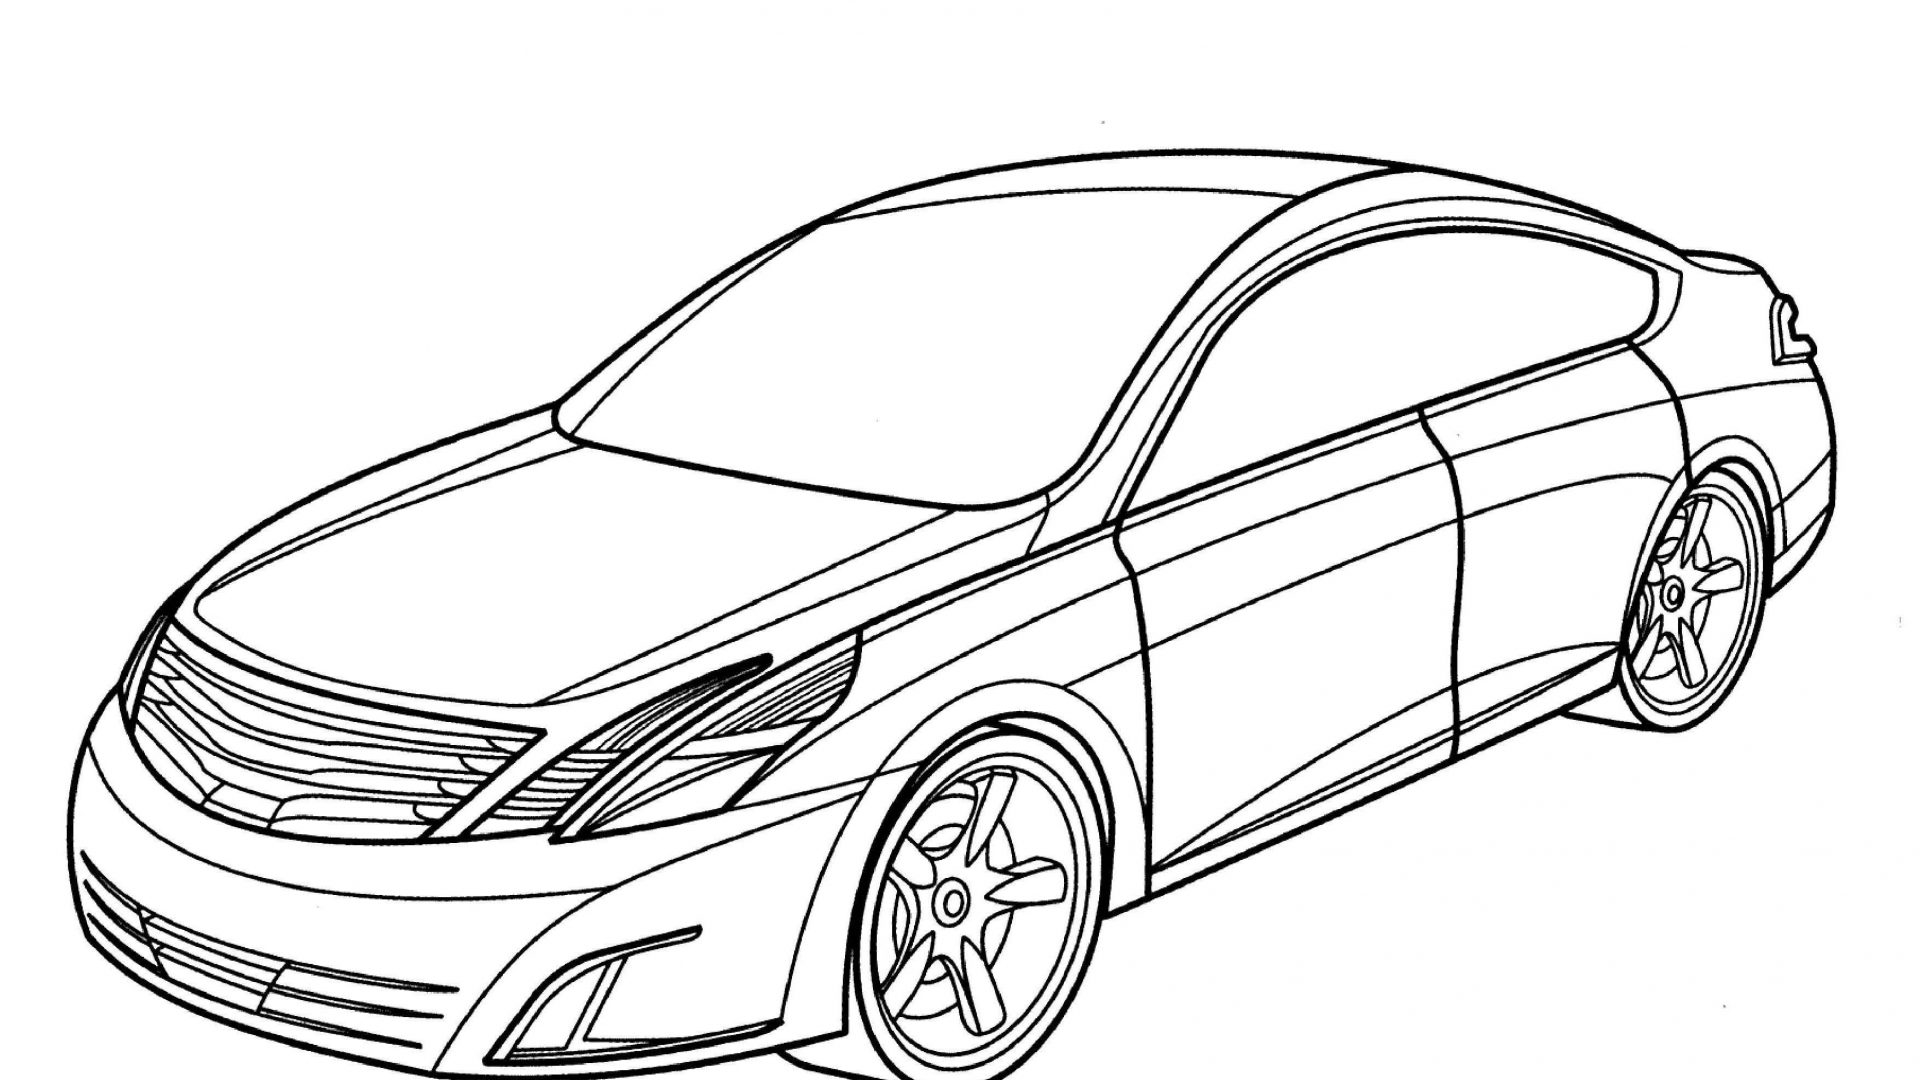 240sx Drawing At Getdrawings